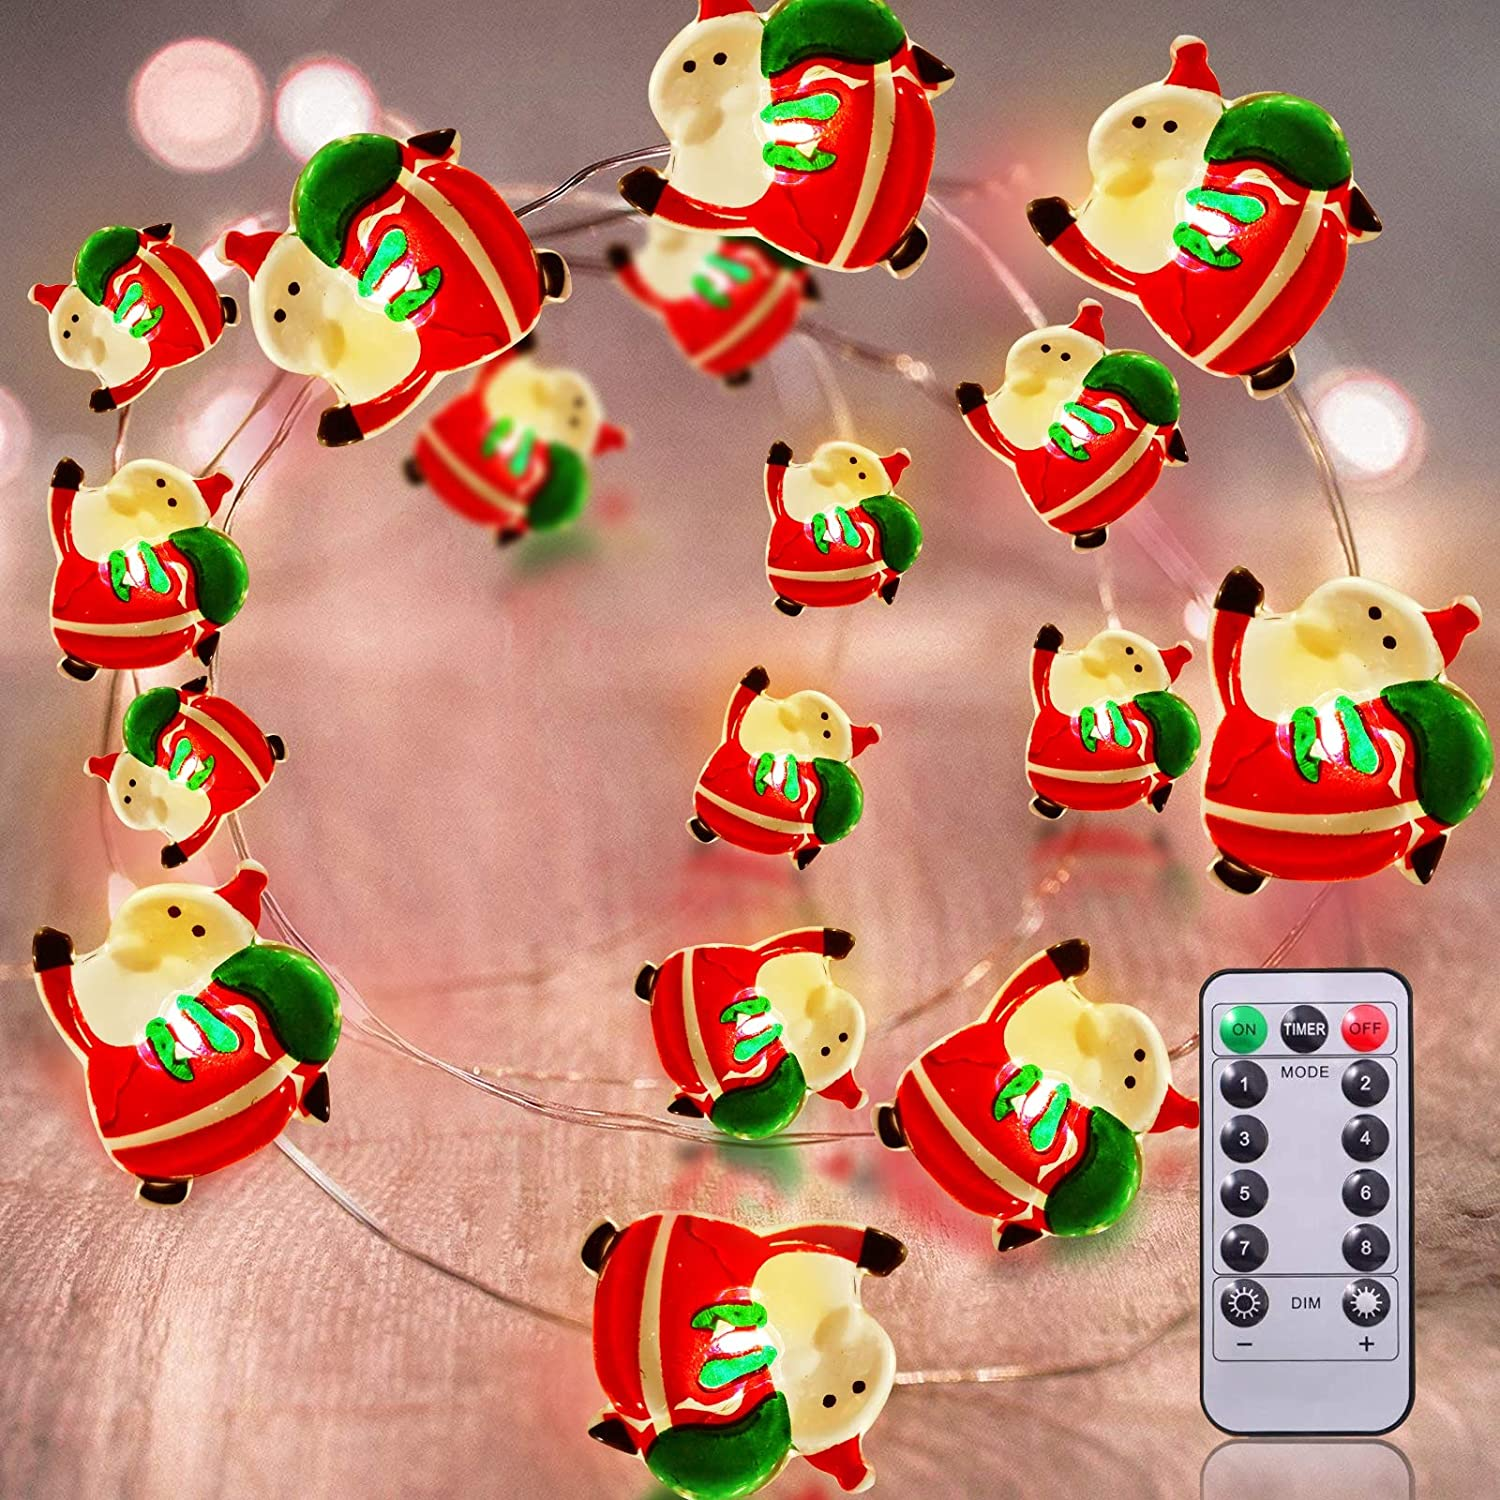 TURNMEON 26.2 Ft 80 Led Santa String Lights Christmas Decorations Battery Operated Fairy Lights with Remote 8 Modes Waterproof Holiday Xmas Decoration Indoor Outdoor Bedroom Home(Warm White)